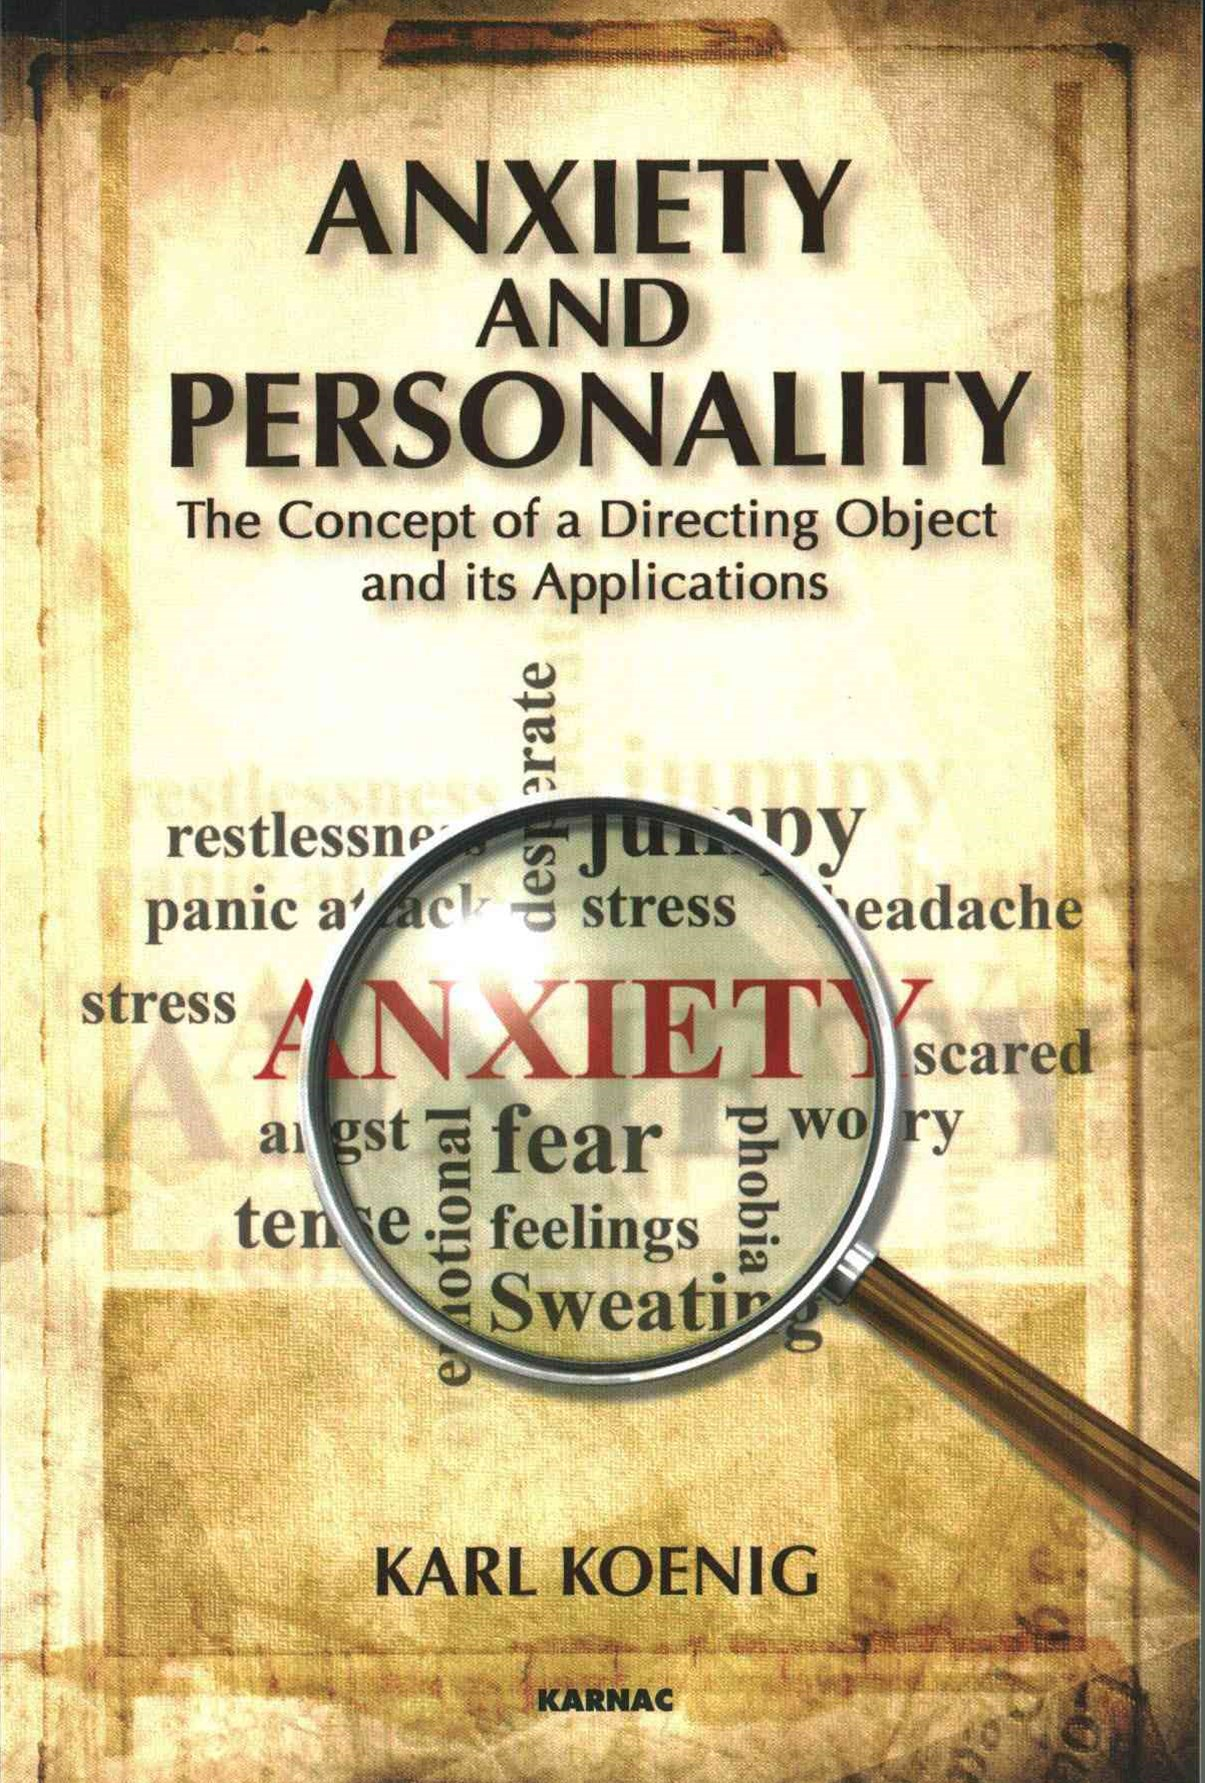 Anxiety and Personality